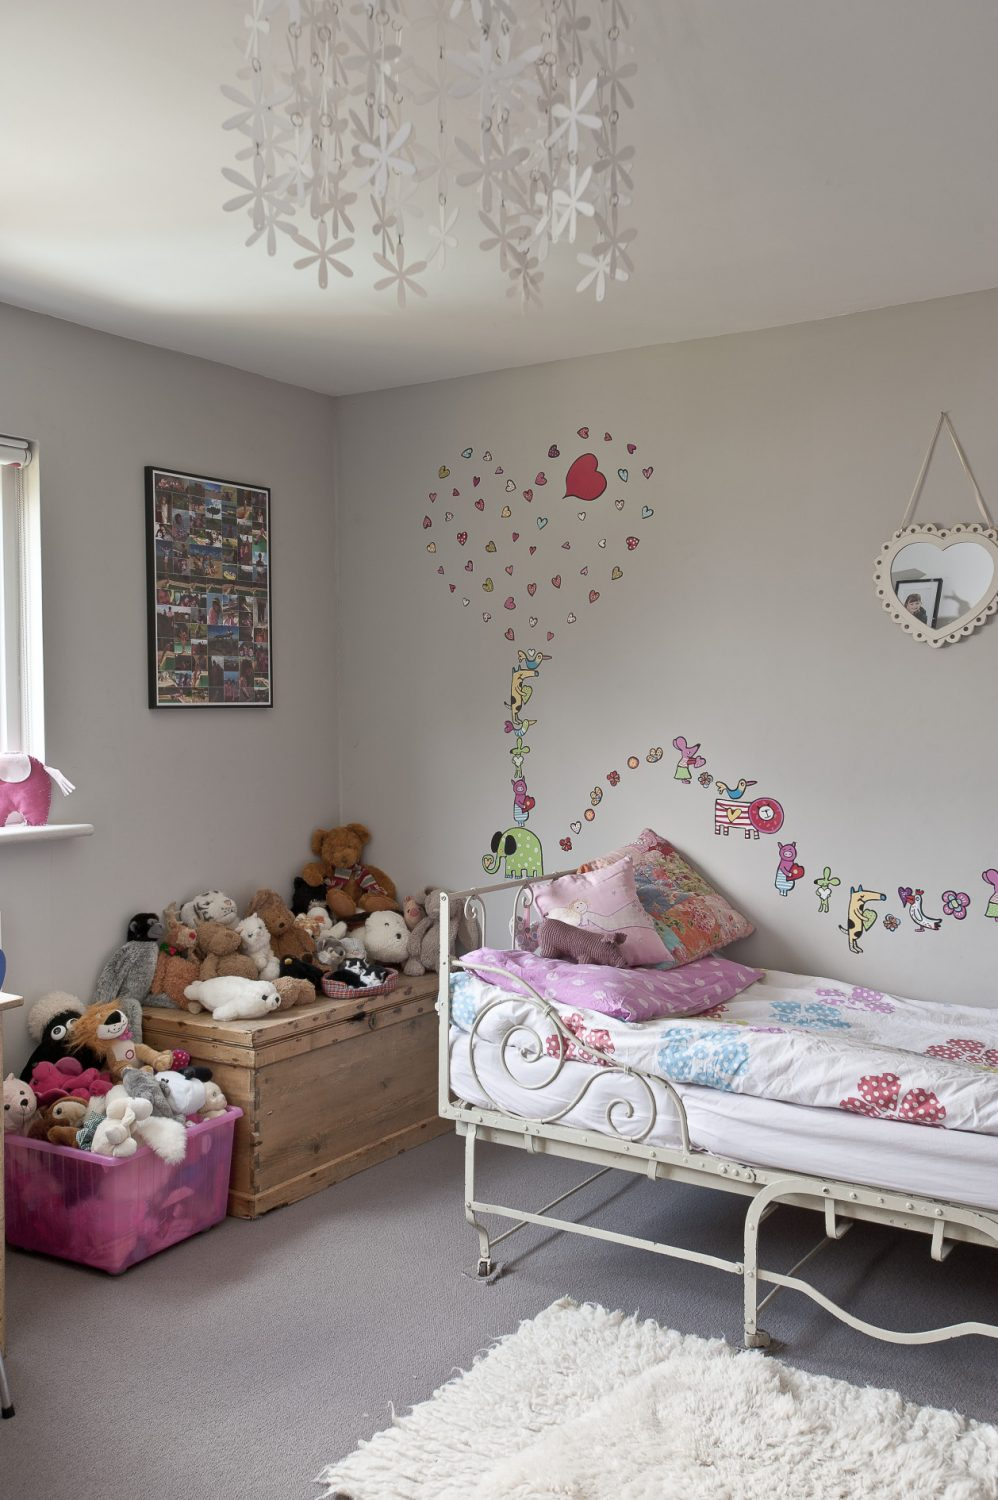 The couple's daughter's room is the perfect nine-year-old girl's room with a pretty wrought-iron bed and a stripped pine double old school desk